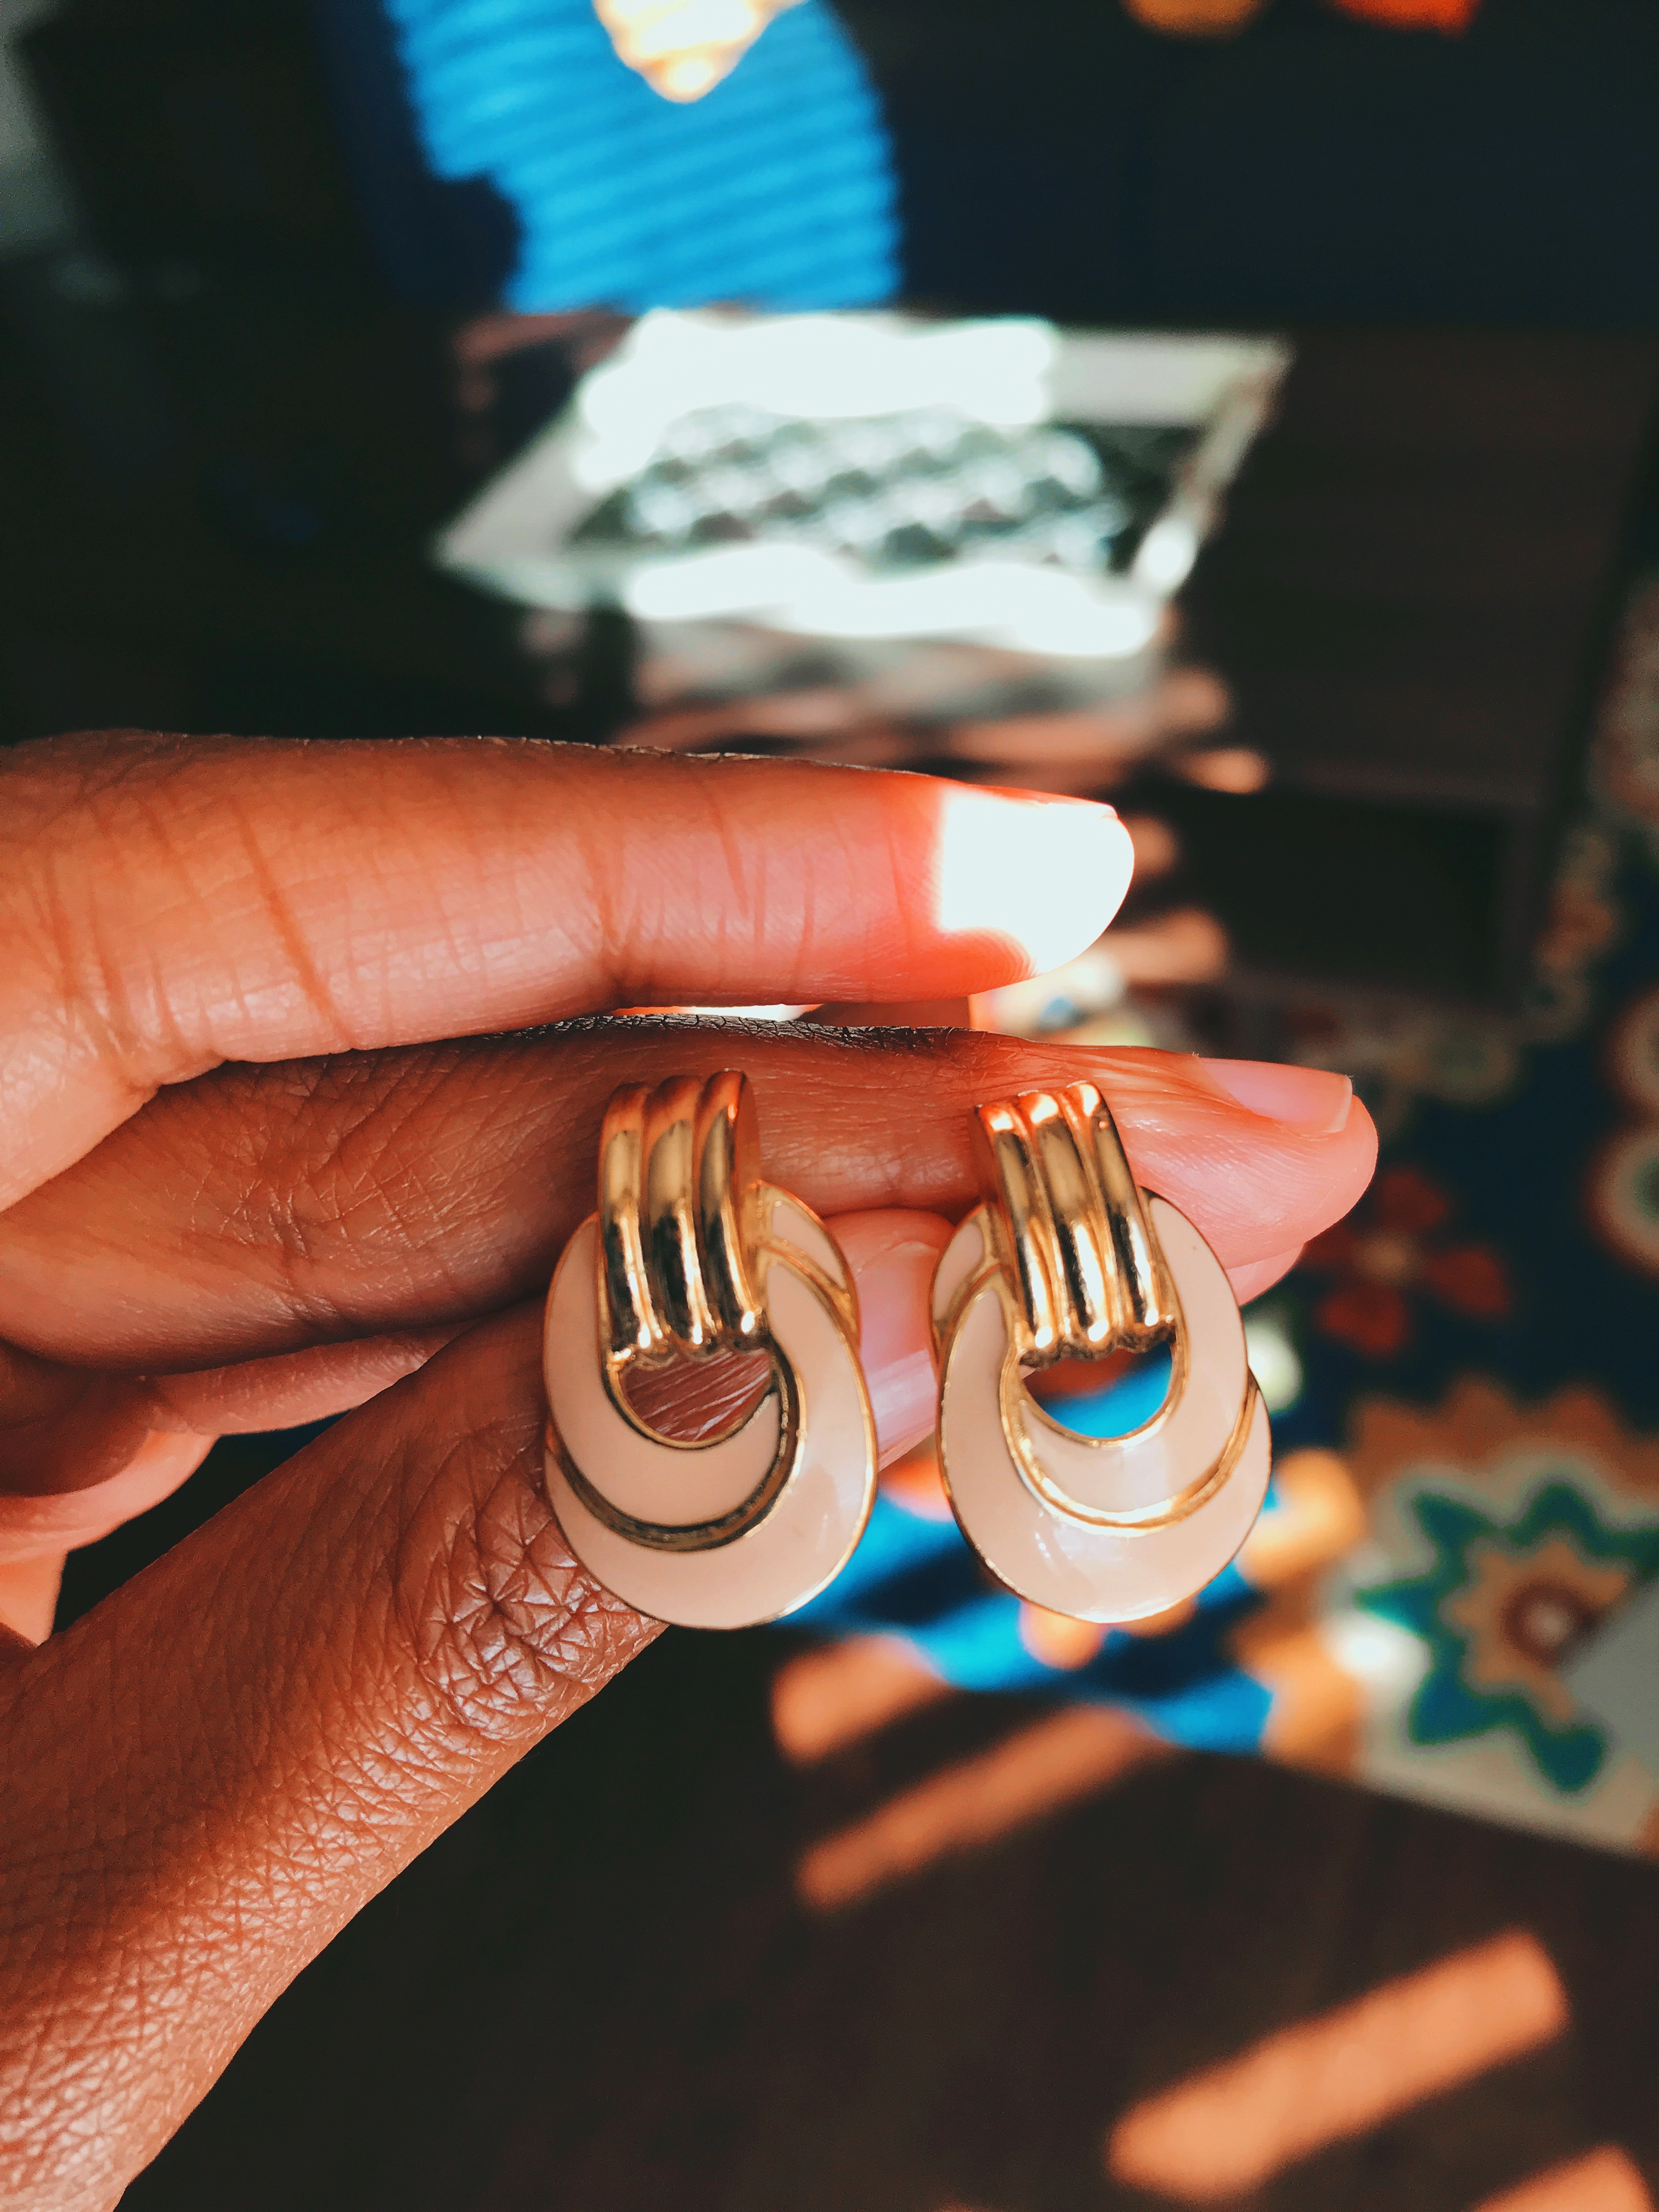 I Found The CUTEST Earrings For $1 At The Thrift Store!